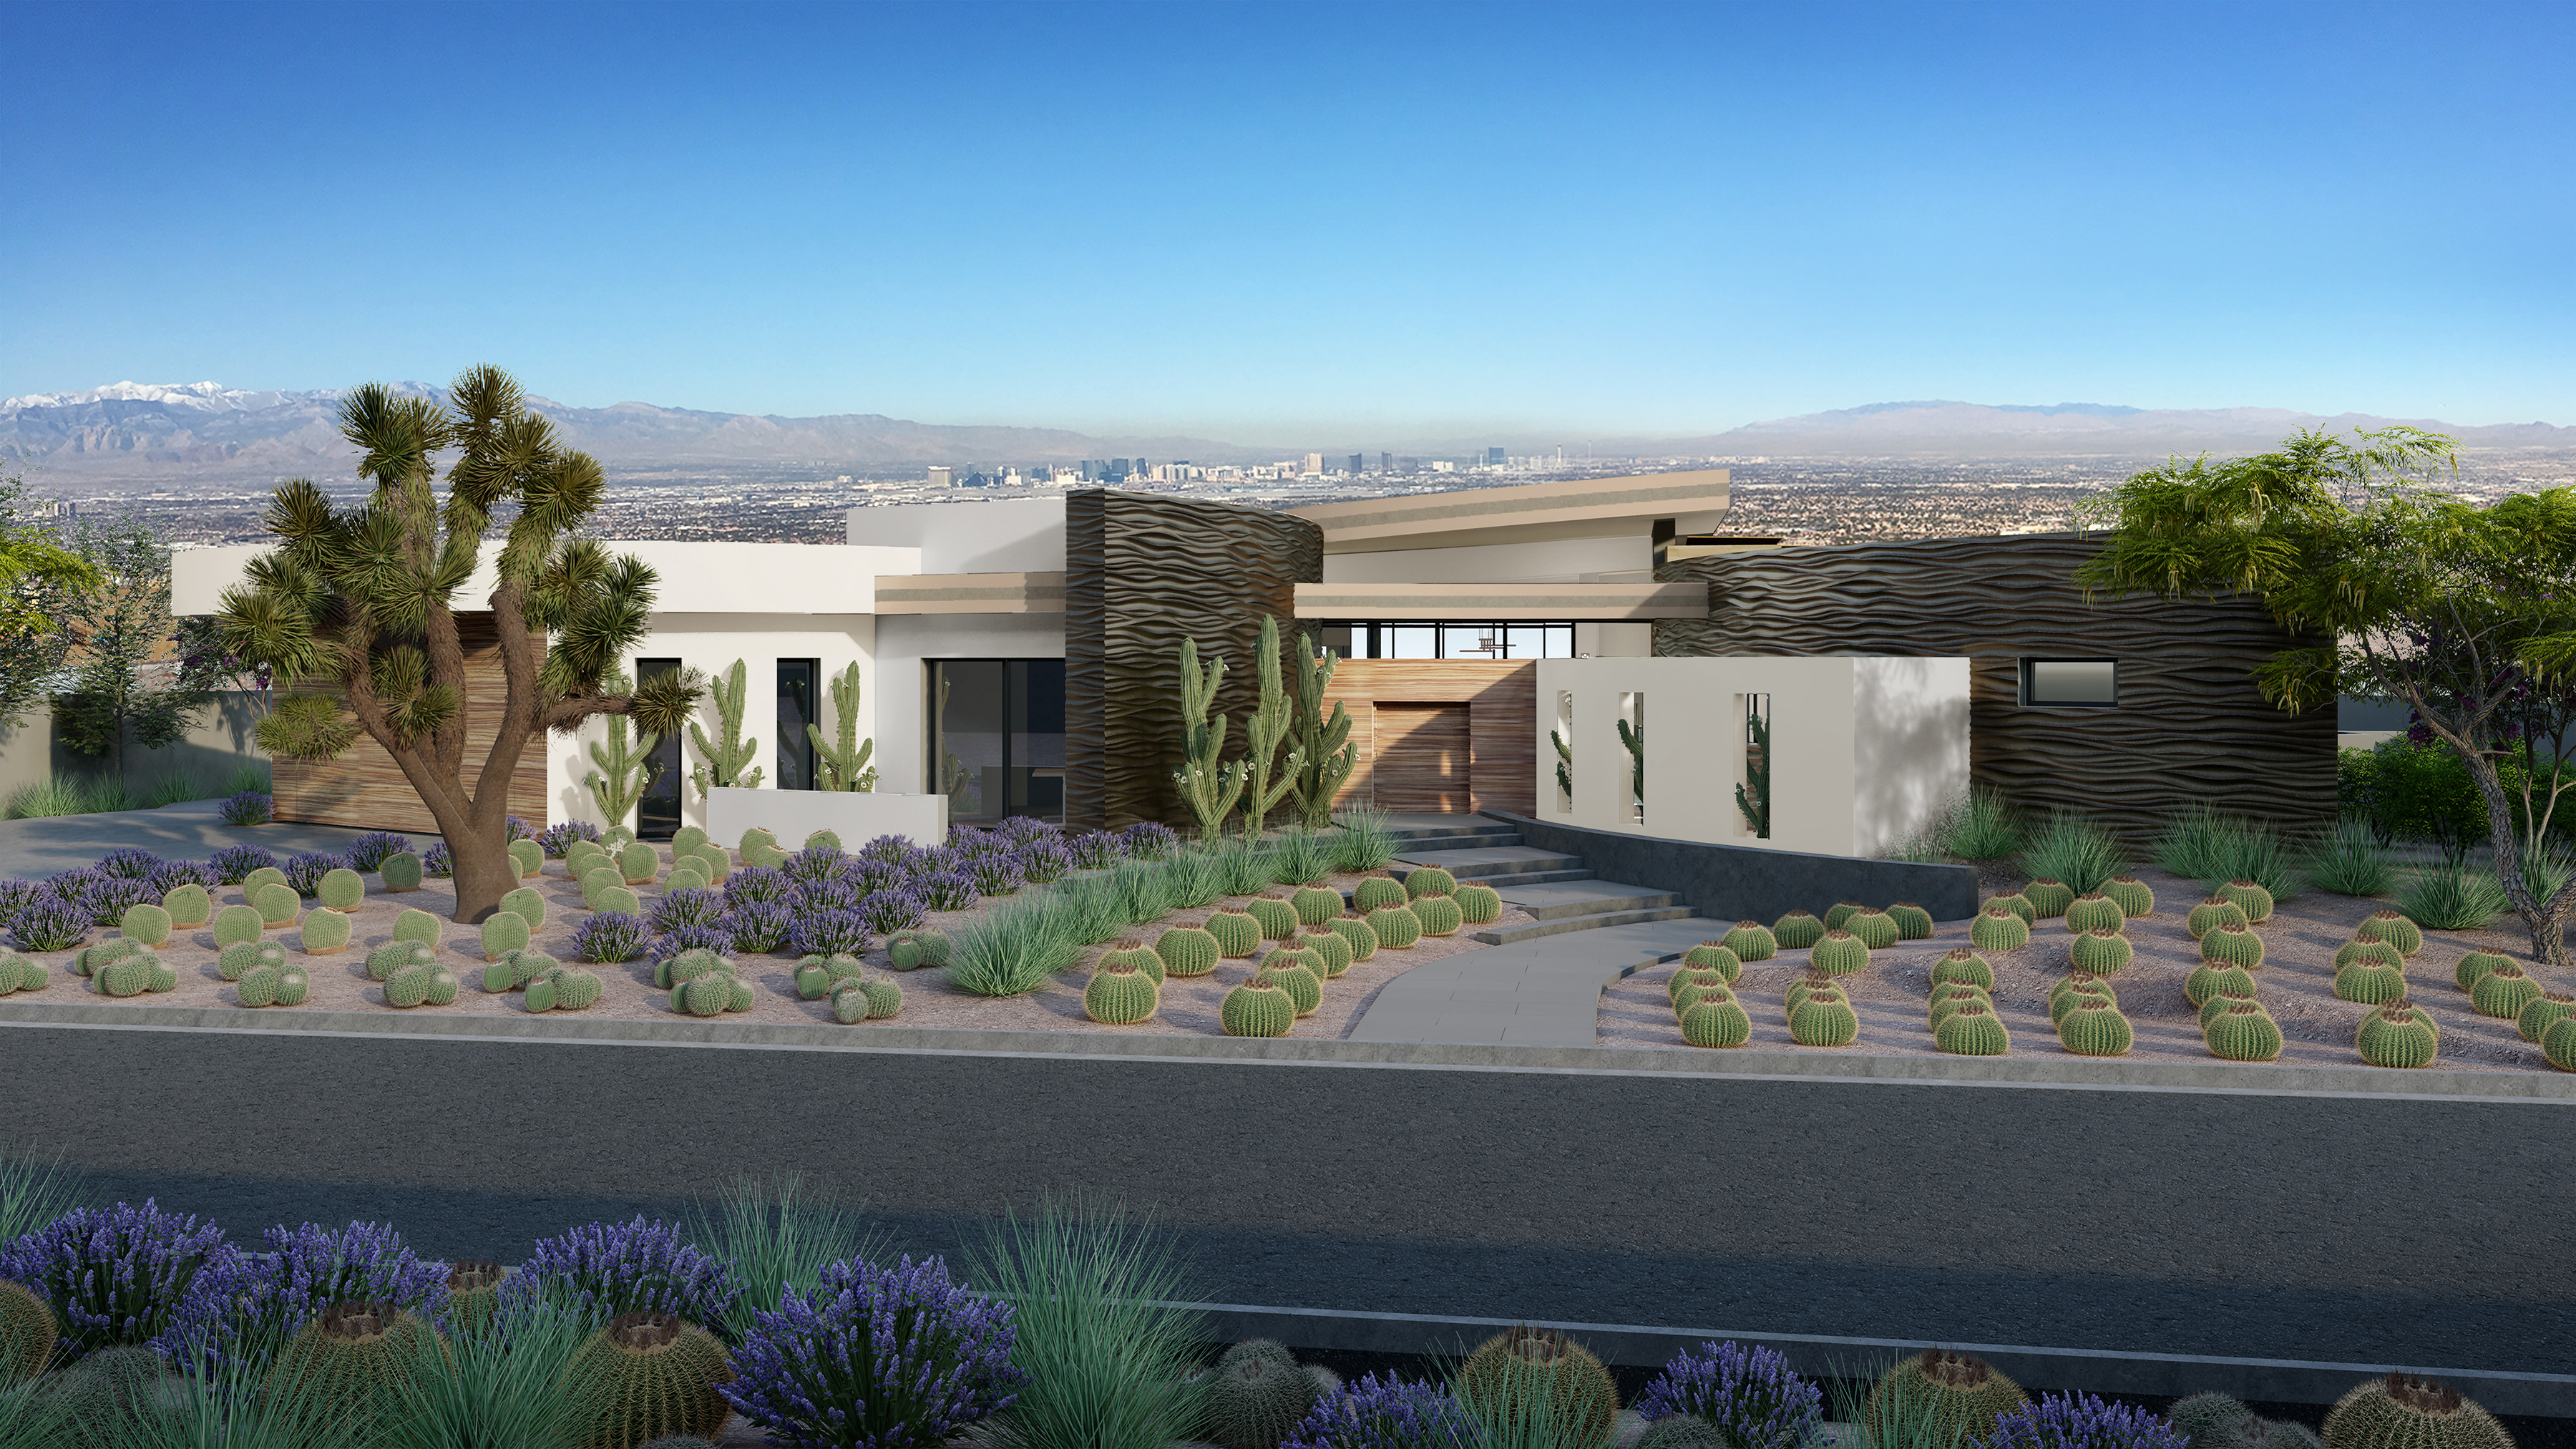 New American Home 2020 The New American Home 2020 Lives at Ascaya   The New American Home